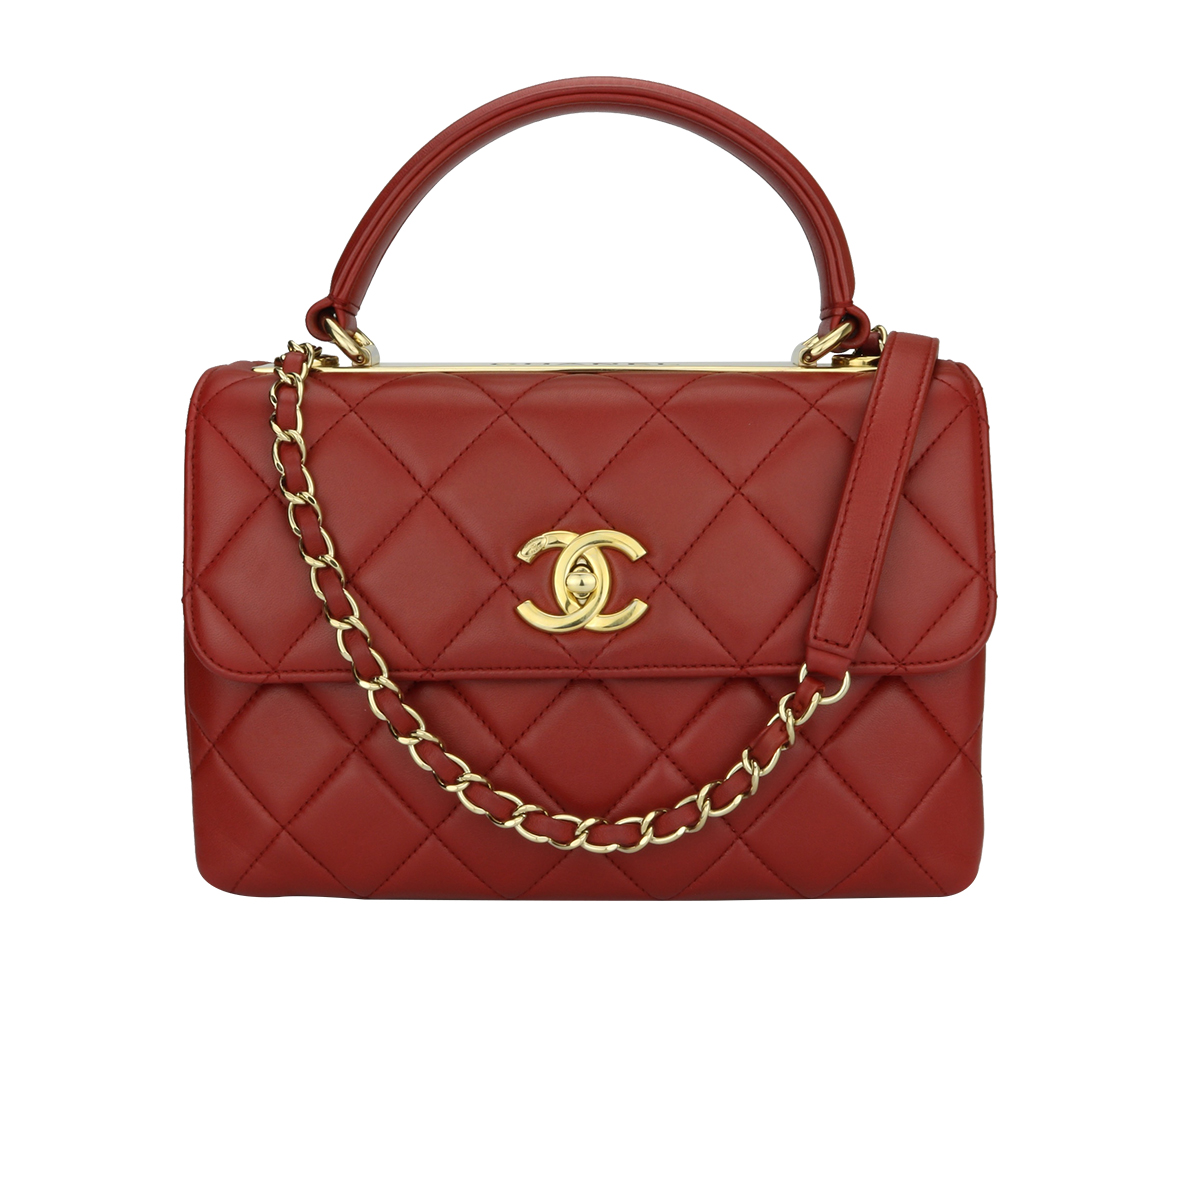 9fa6c0c6a0ba Home Chanel CHANEL Trendy CC Small Red Lambskin Gold Hardware 2017.   